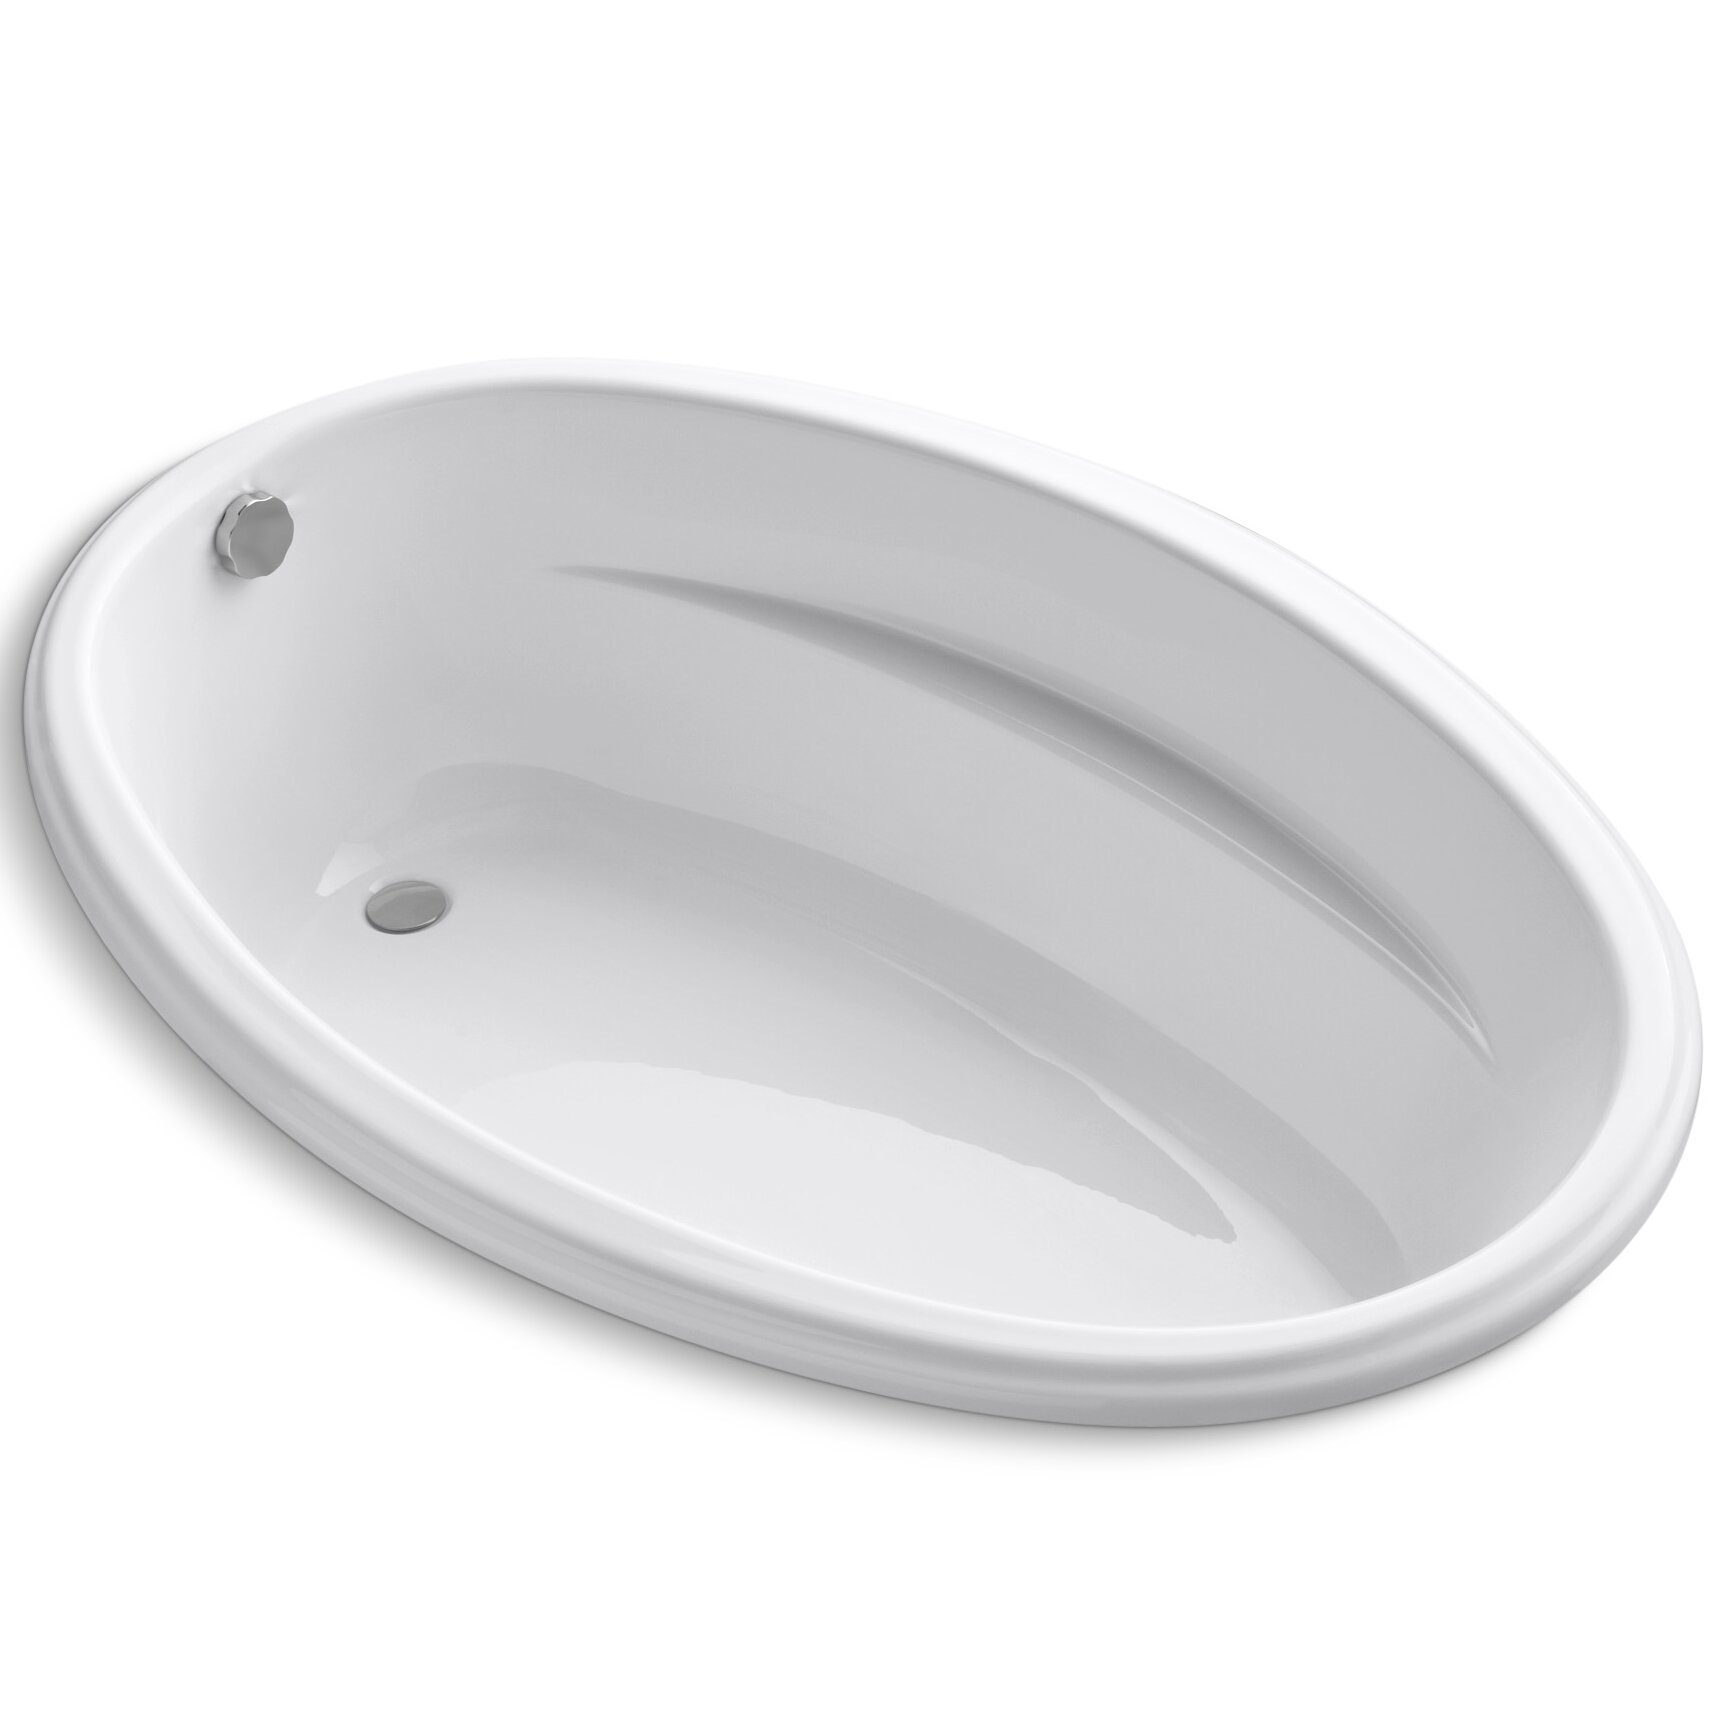 kohler proflex 60 x 40 soaking bathtub reviews wayfair. Black Bedroom Furniture Sets. Home Design Ideas